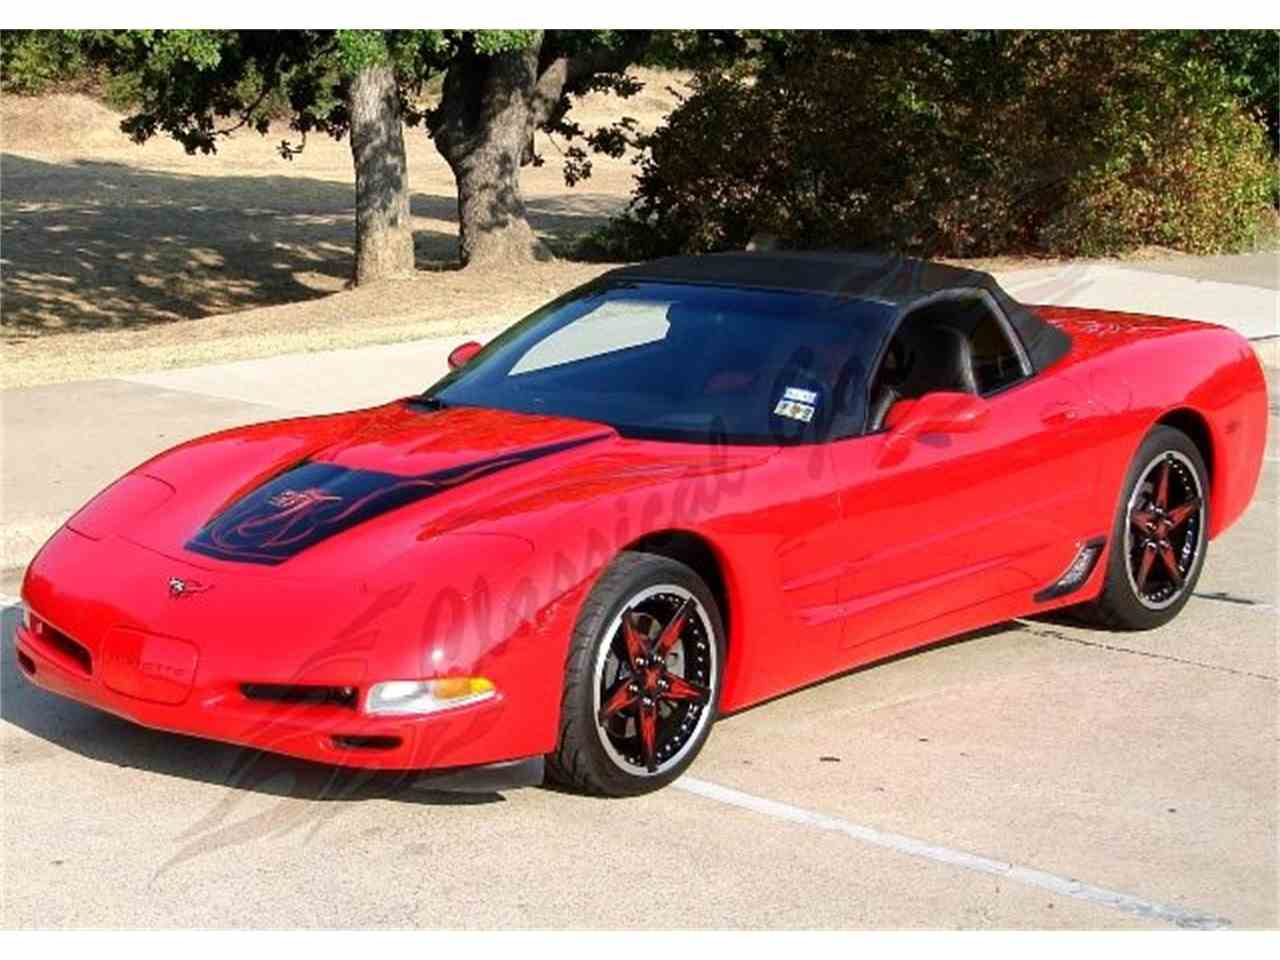 Large Picture of 2002 Chevrolet Corvette located in Texas - $28,900.00 - 7JWA